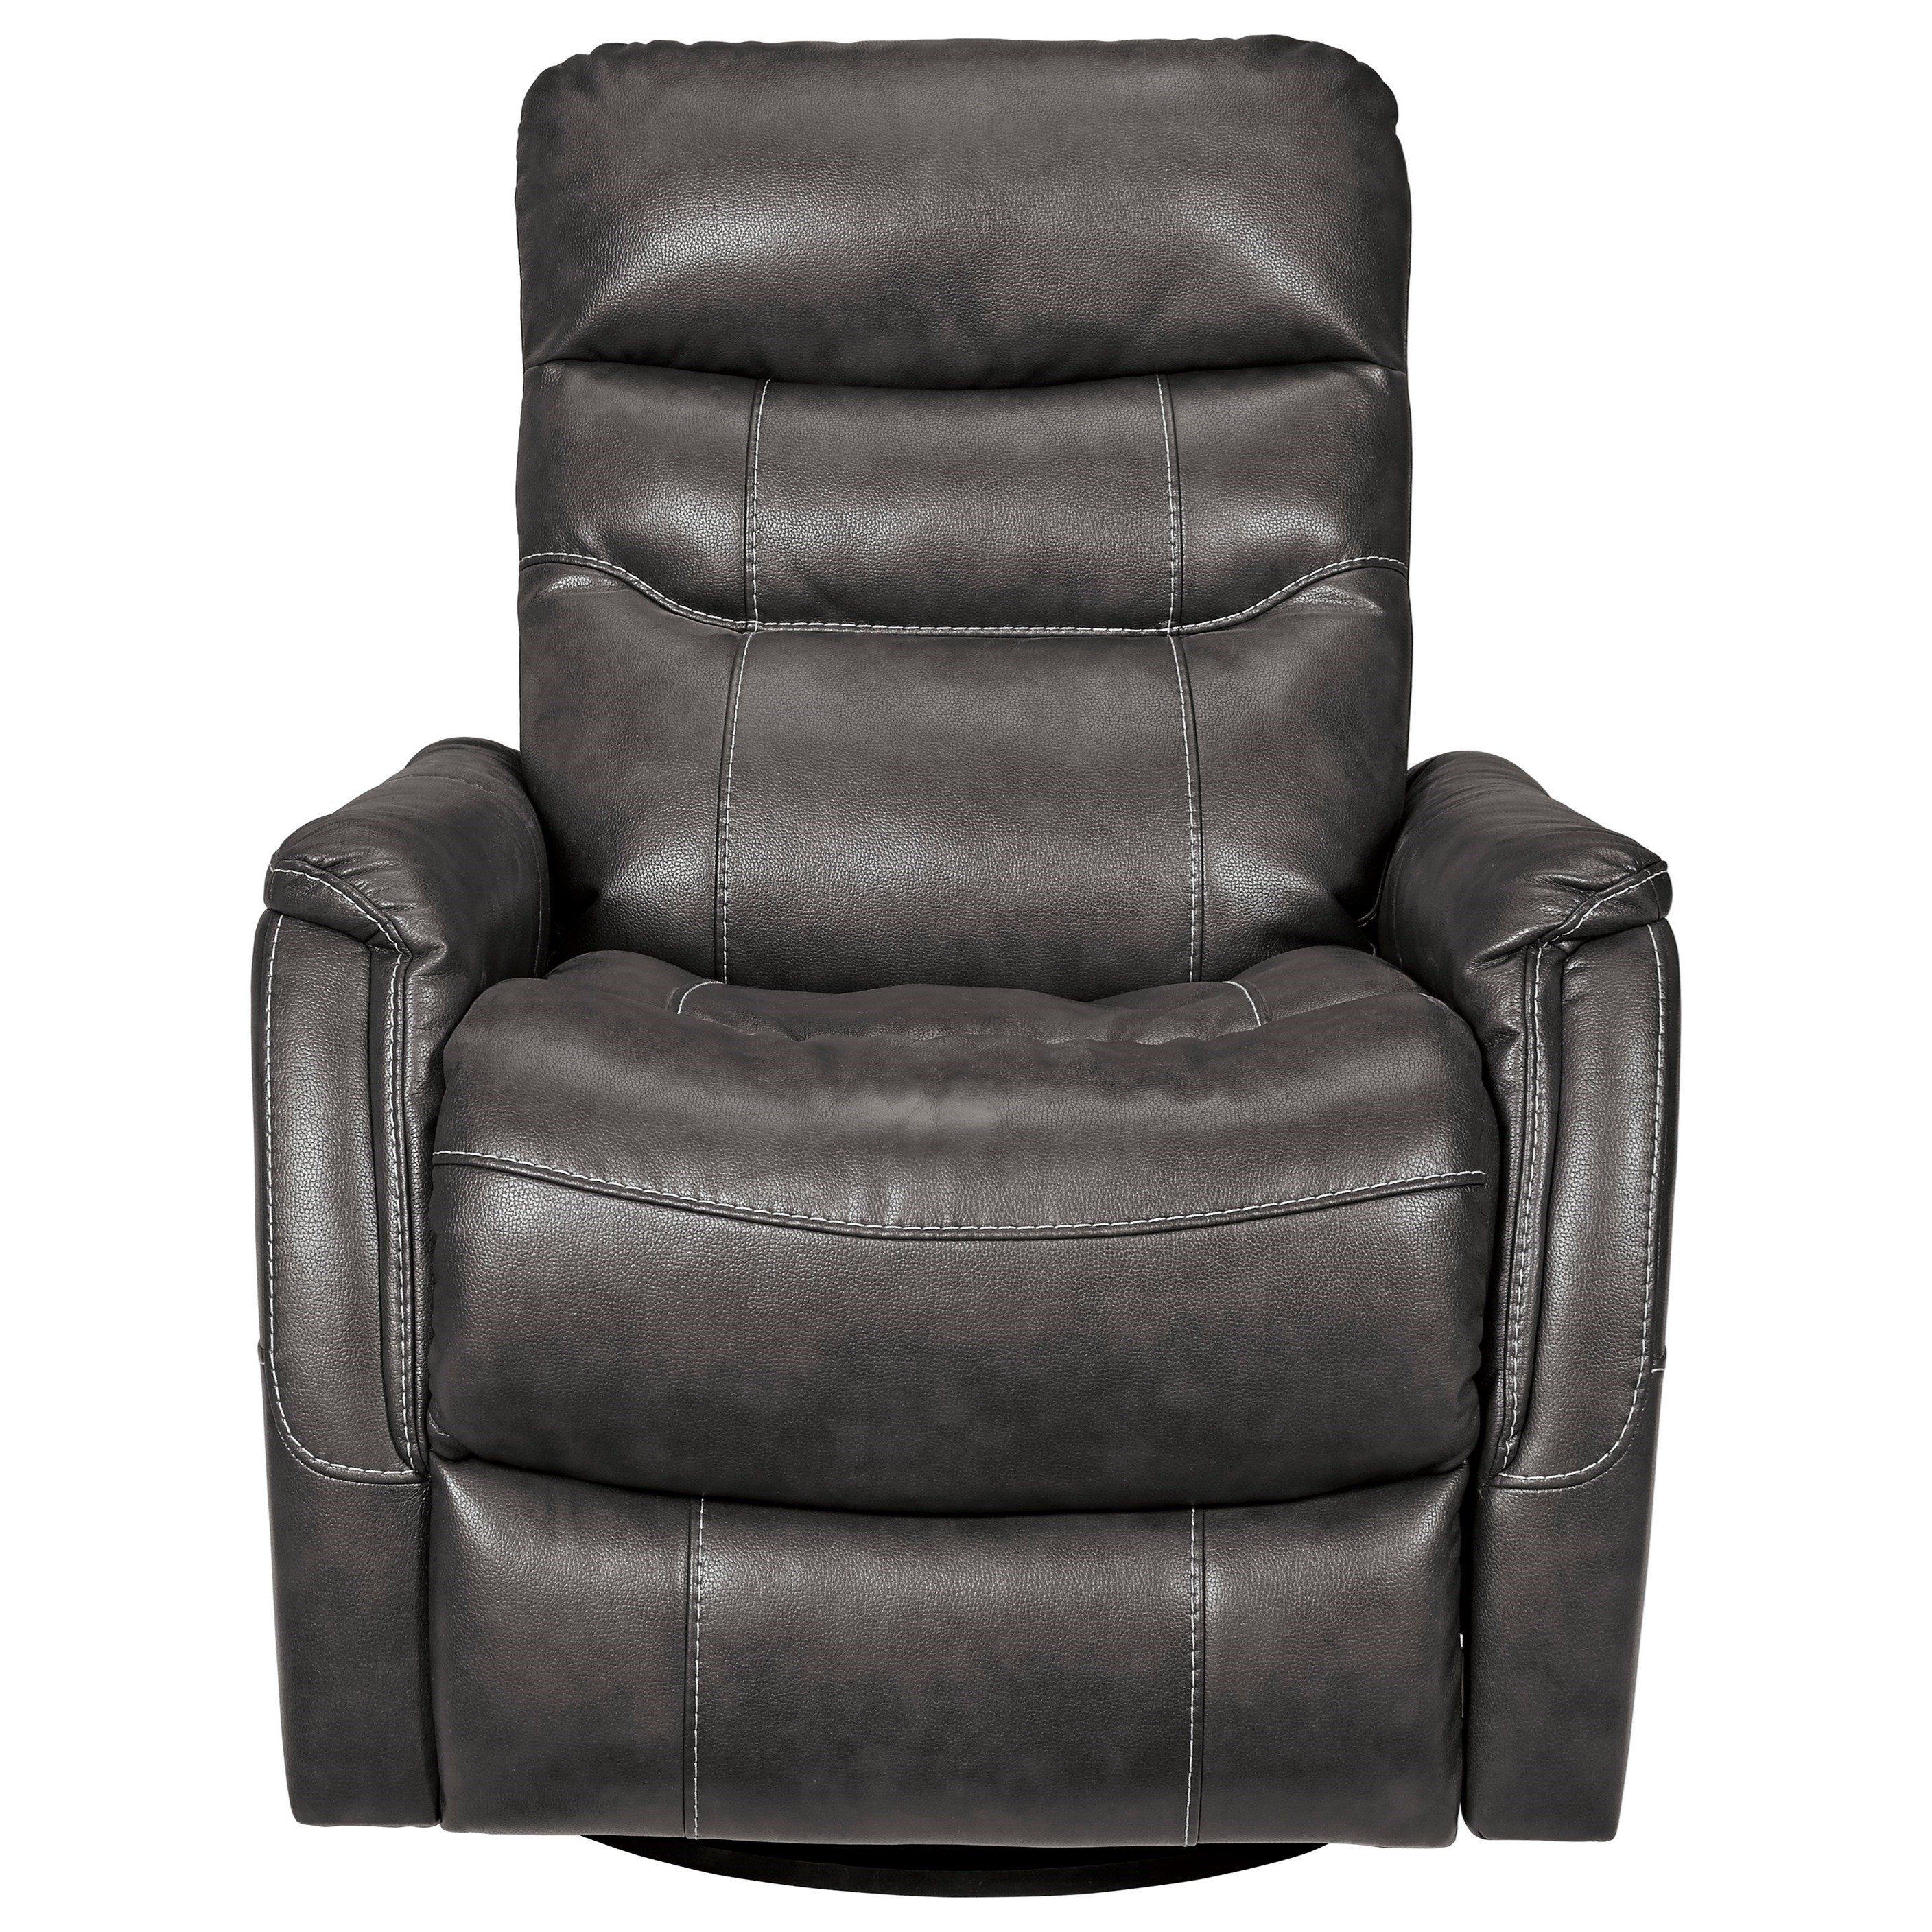 Riptyme Swivel Glider Recliner by Ashley (Signature Design) at Johnny Janosik